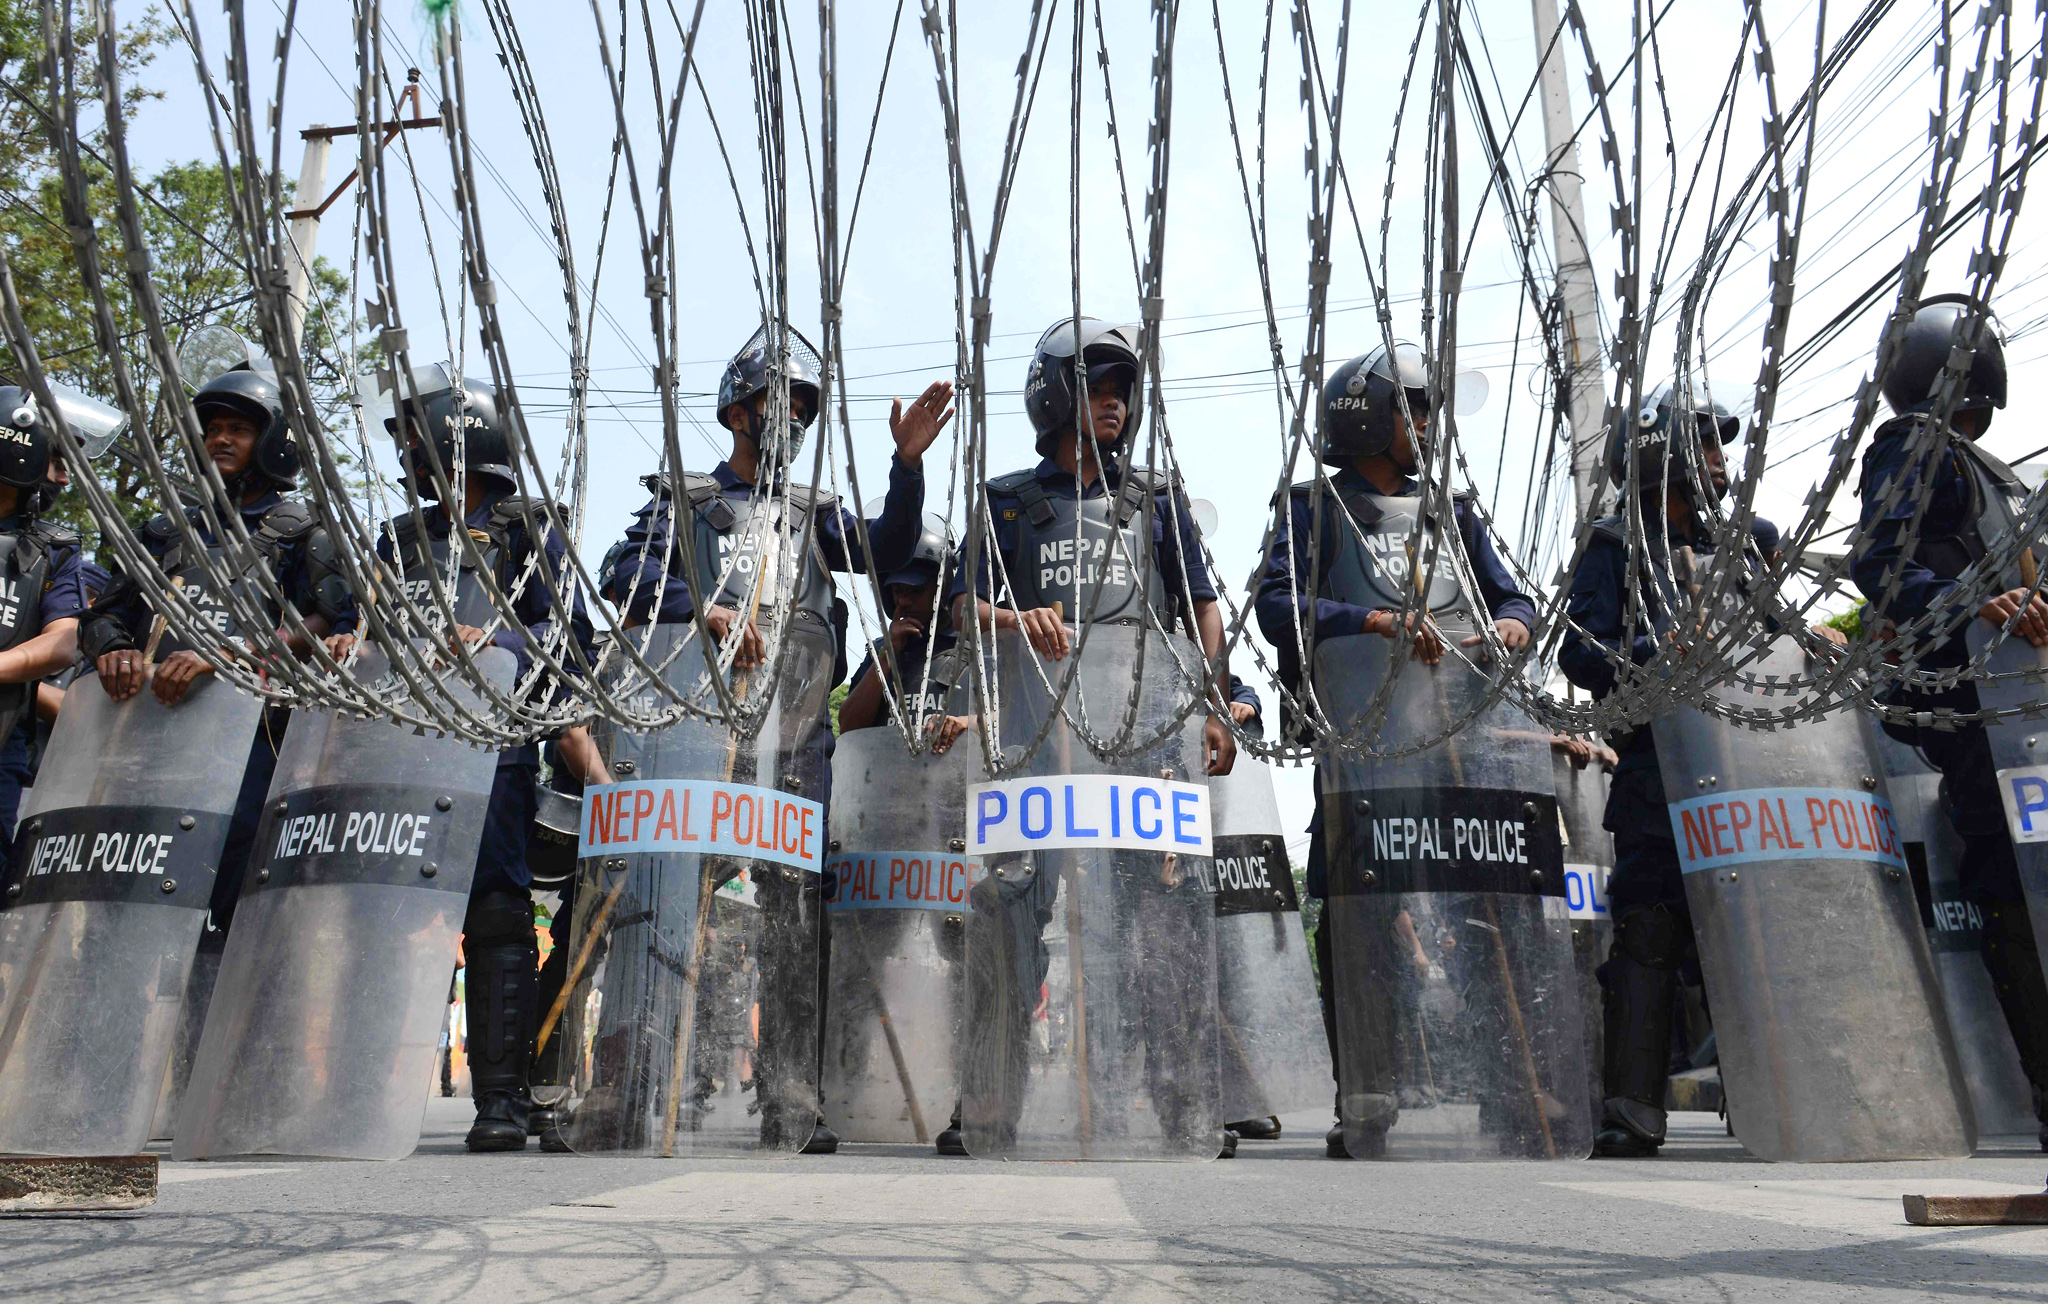 Nepalese riot police stand guard as activists from the Federal Alliance (members of the Madhesi and ethnic communities) demonstrate against the government in Kathmandu on May 17, 2016.   Hundreds of members of Nepal's ethnic minorities blocked roads in renewed protests calling for changes to the Himalayan nation's controversial new constitution. / AFP PHOTO / PRAKASH MATHEMAPRAKASH MATHEMA/AFP/Getty Images